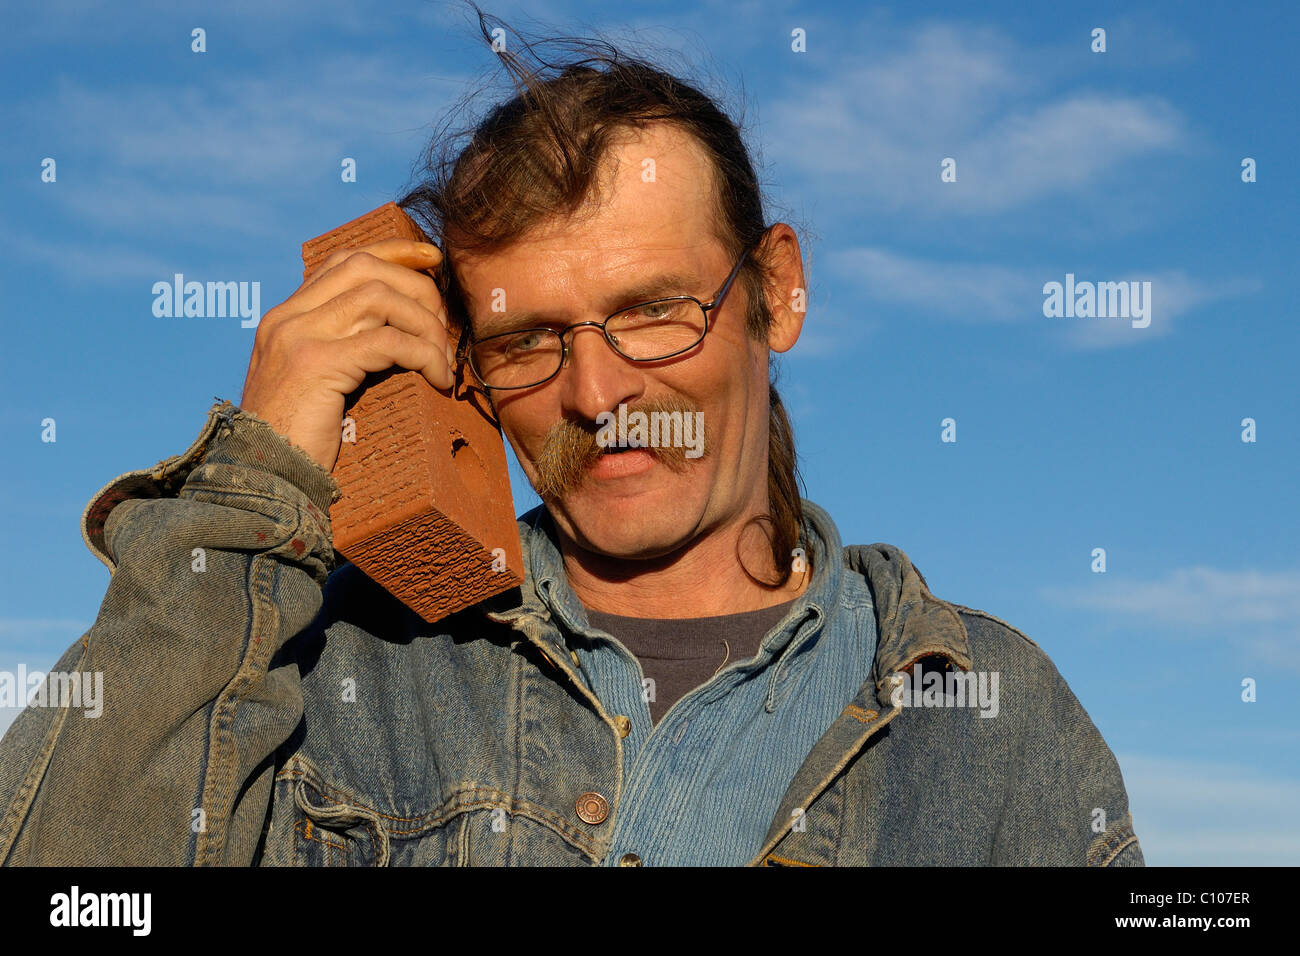 A scruffy man uses a brick as a mobil phone Stock Photo